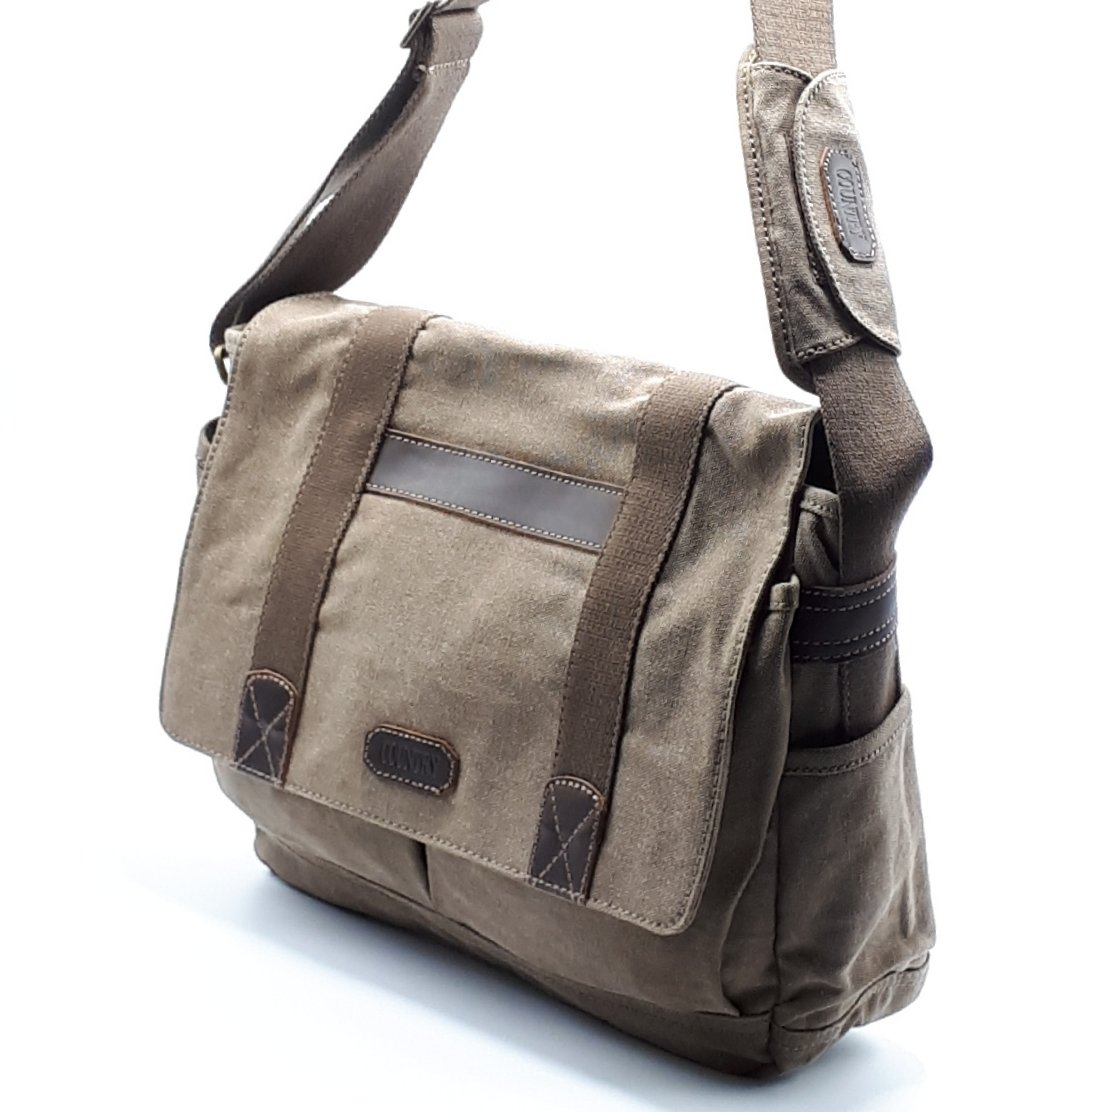 Porta PC unisex in canvas e pelle - Luanaromizi.com